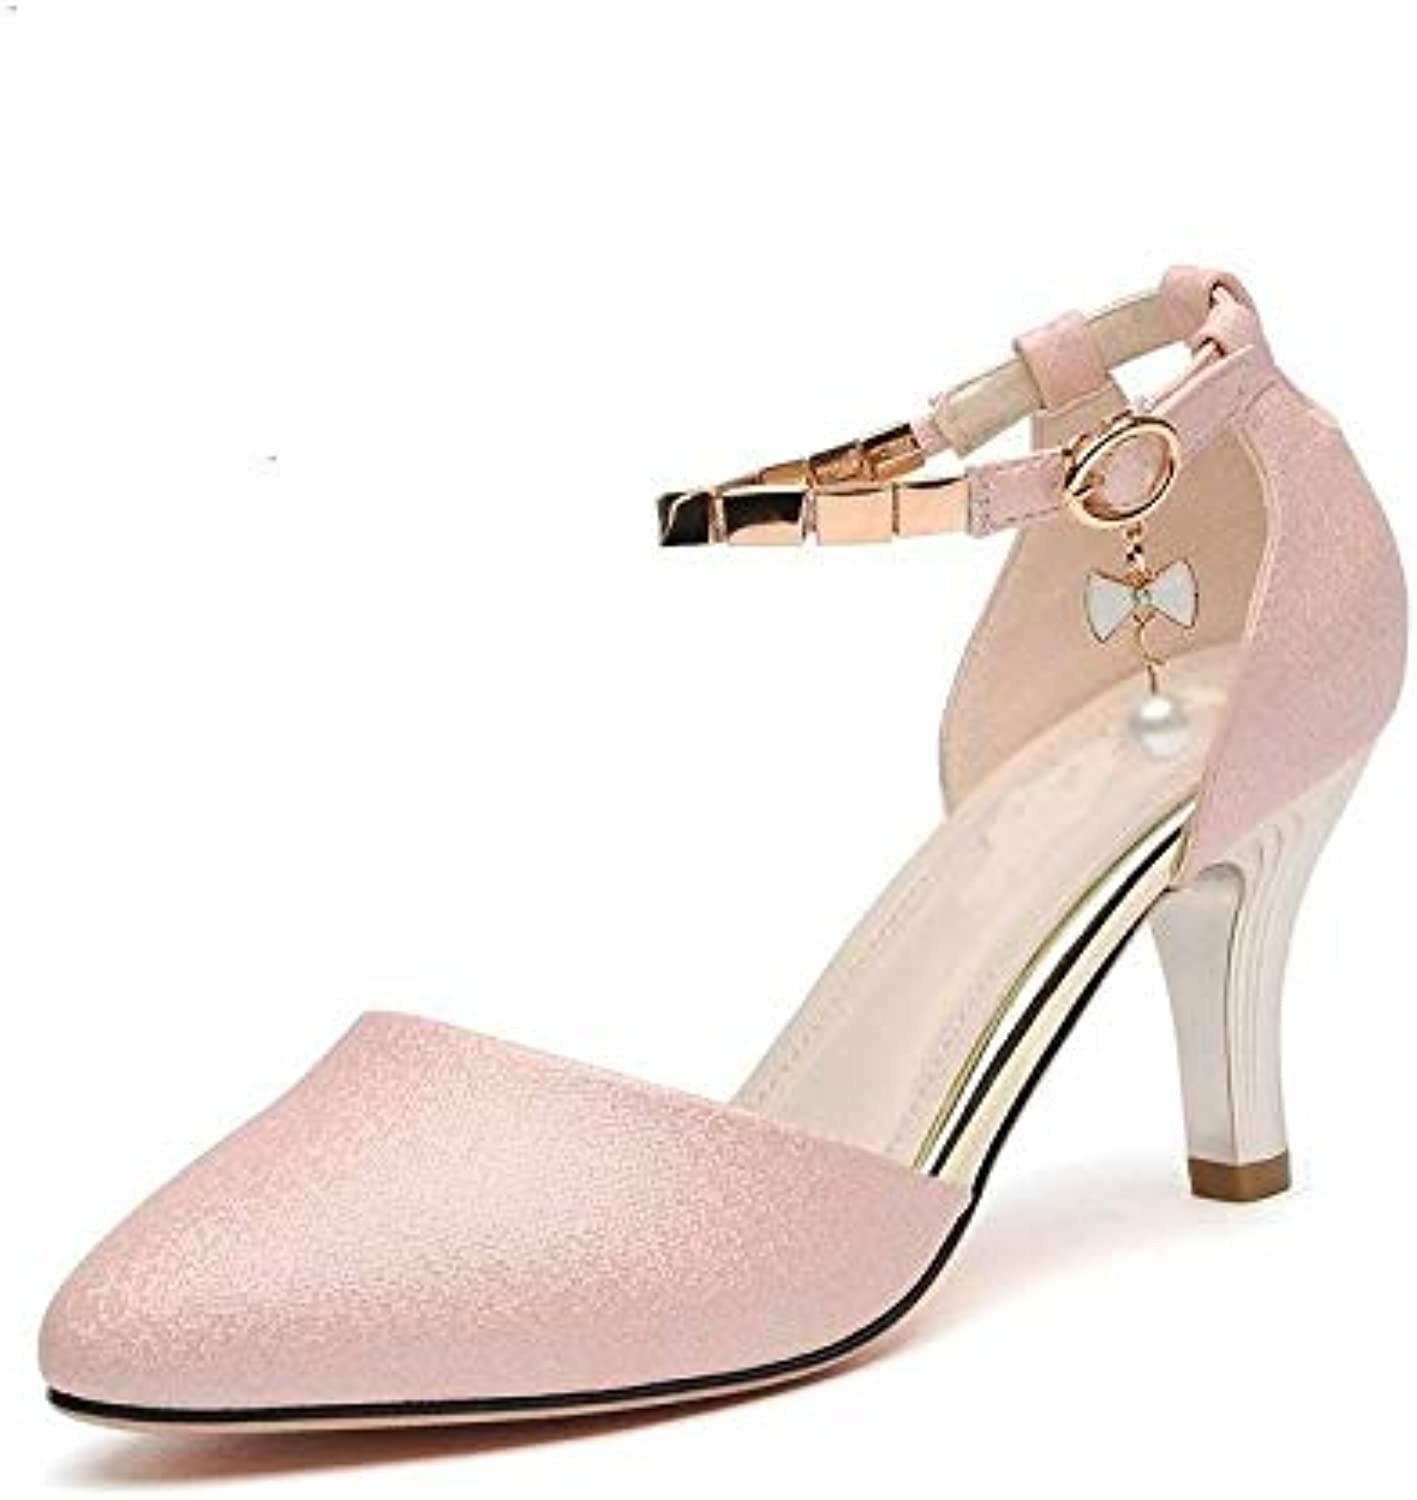 SUNNY Store Lady Pumps Pointed Toe Office Lady Pumps Buckle Strap Platform High Heels